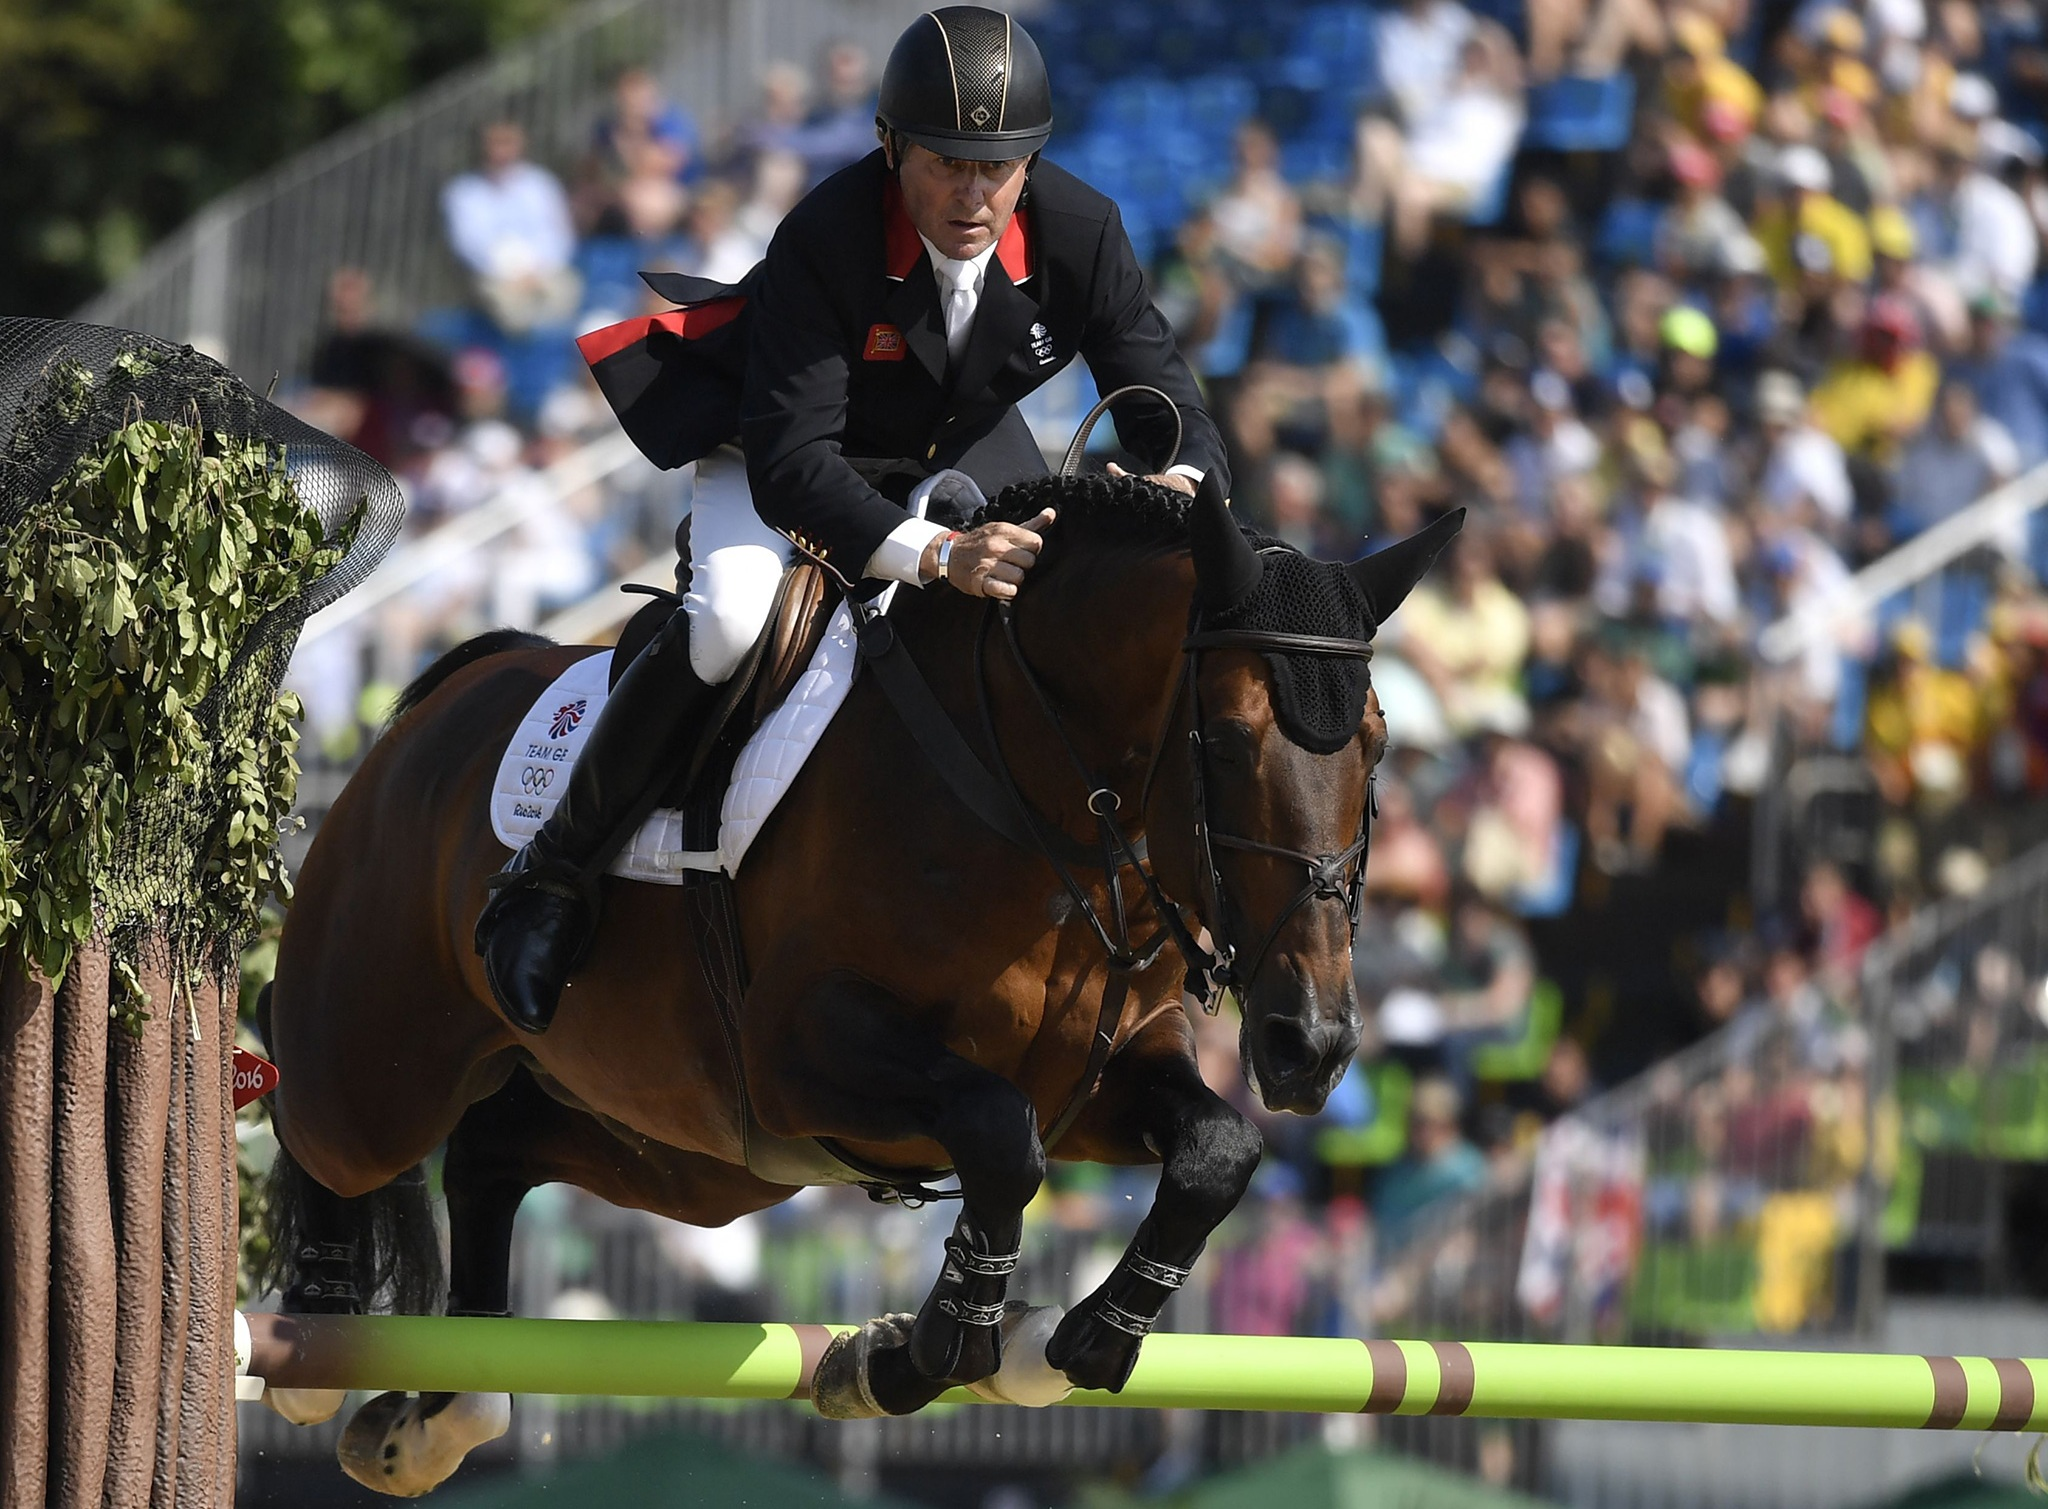 Olympic Games 2016 Jumping Individual